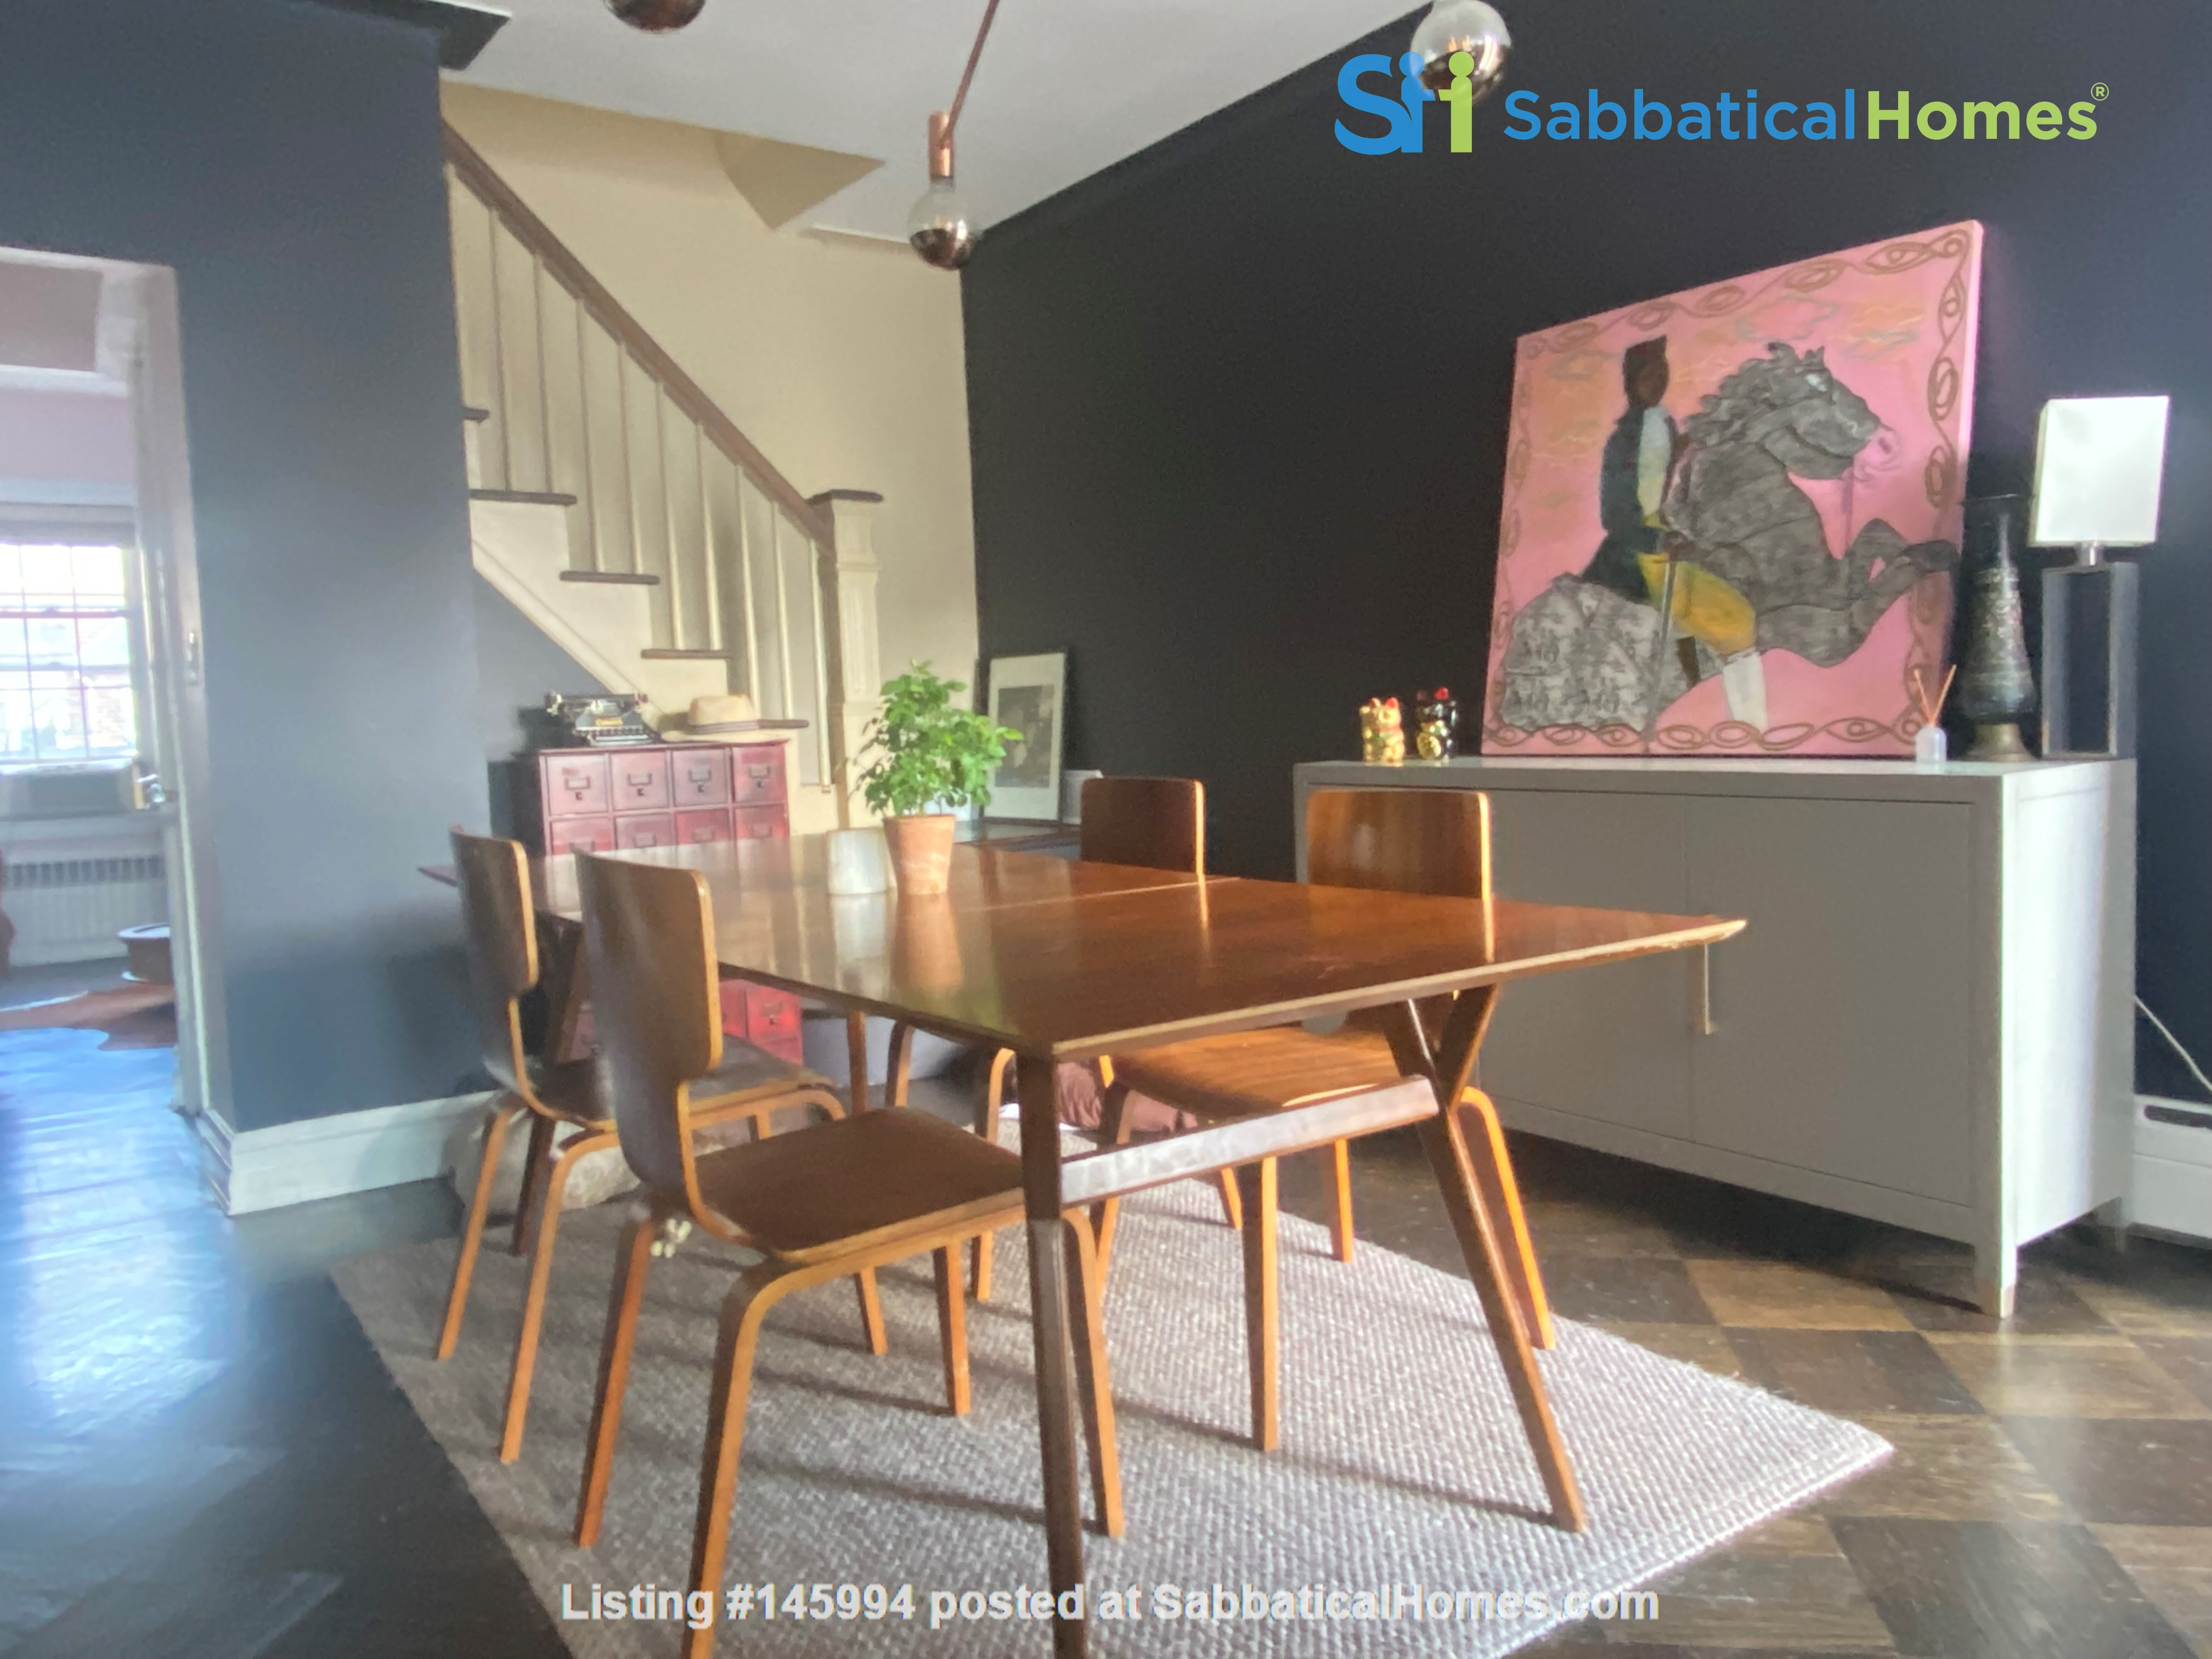 Brooklyn Jewel Box 3br/2bth House, Walking Distance to Park/Sunset Pier! Home Exchange in  2